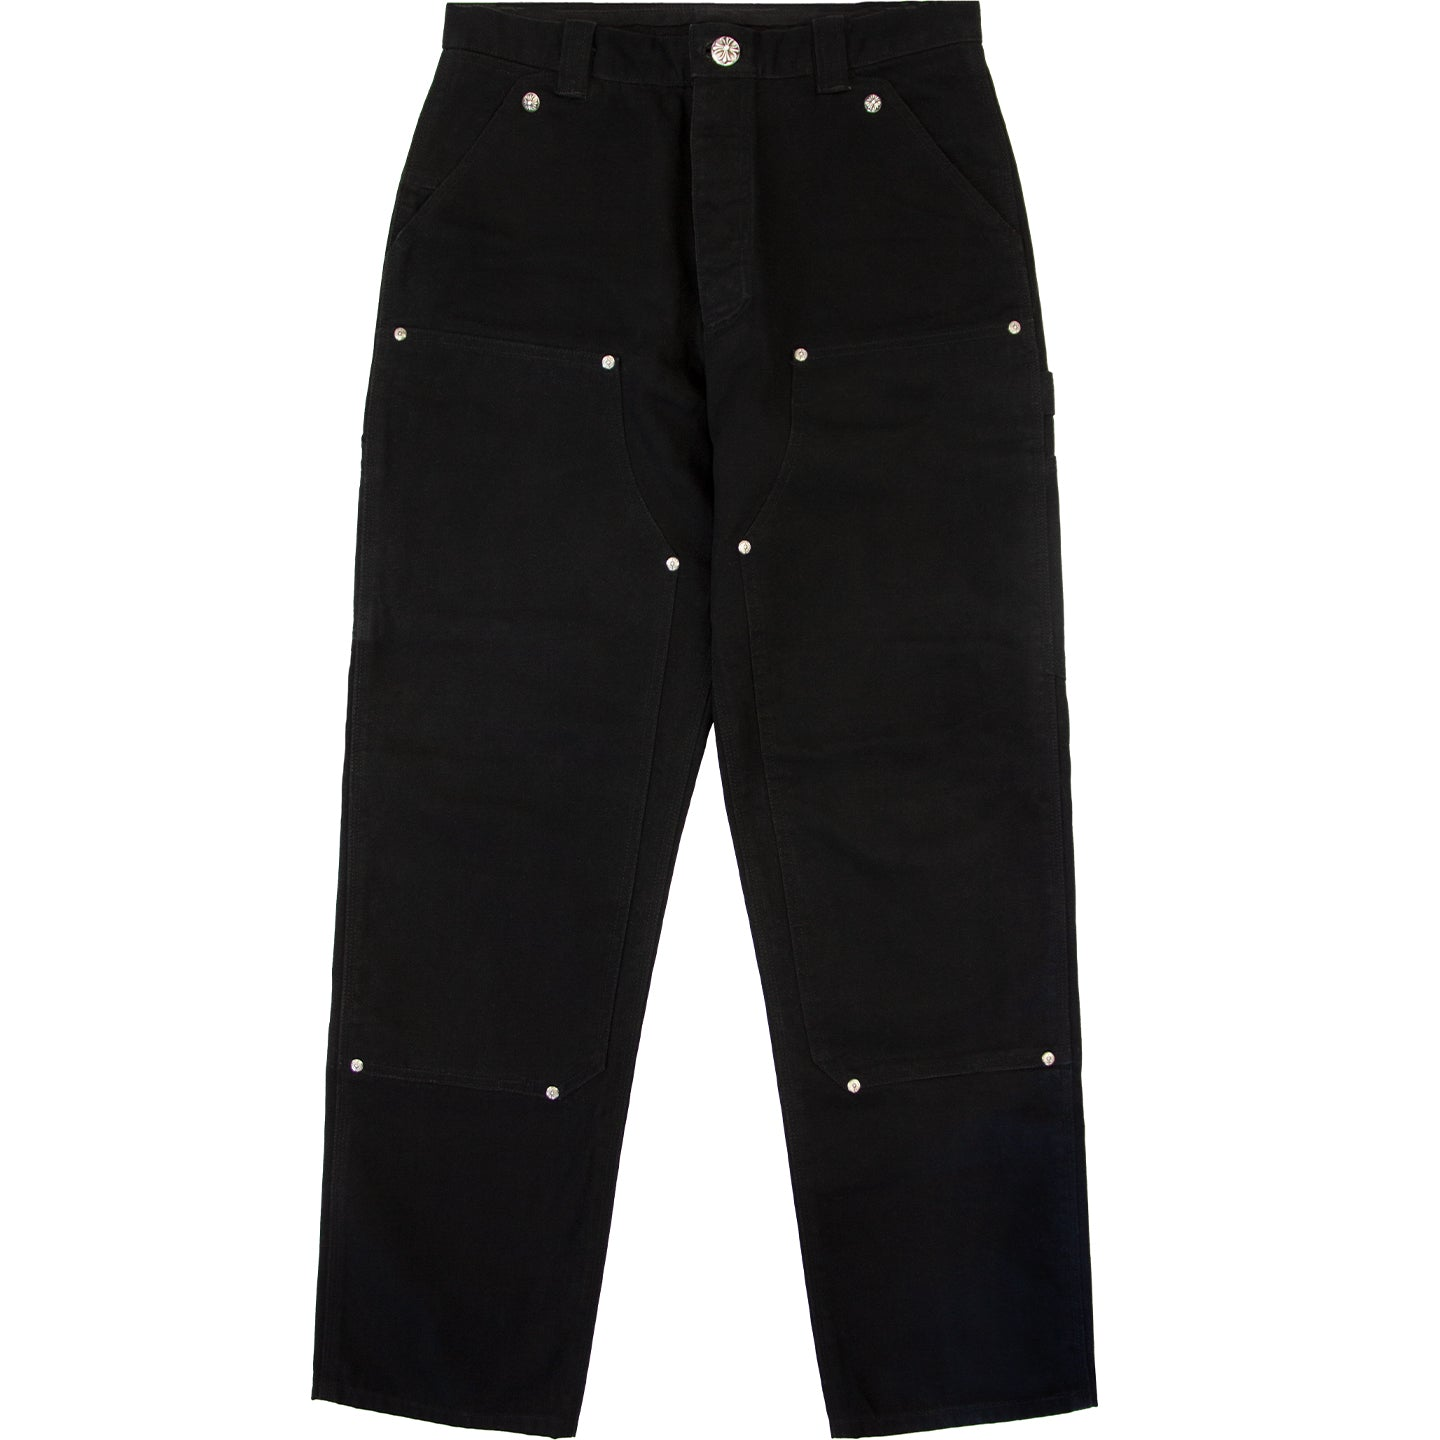 CHROME HEARTS CARPENTER PANT